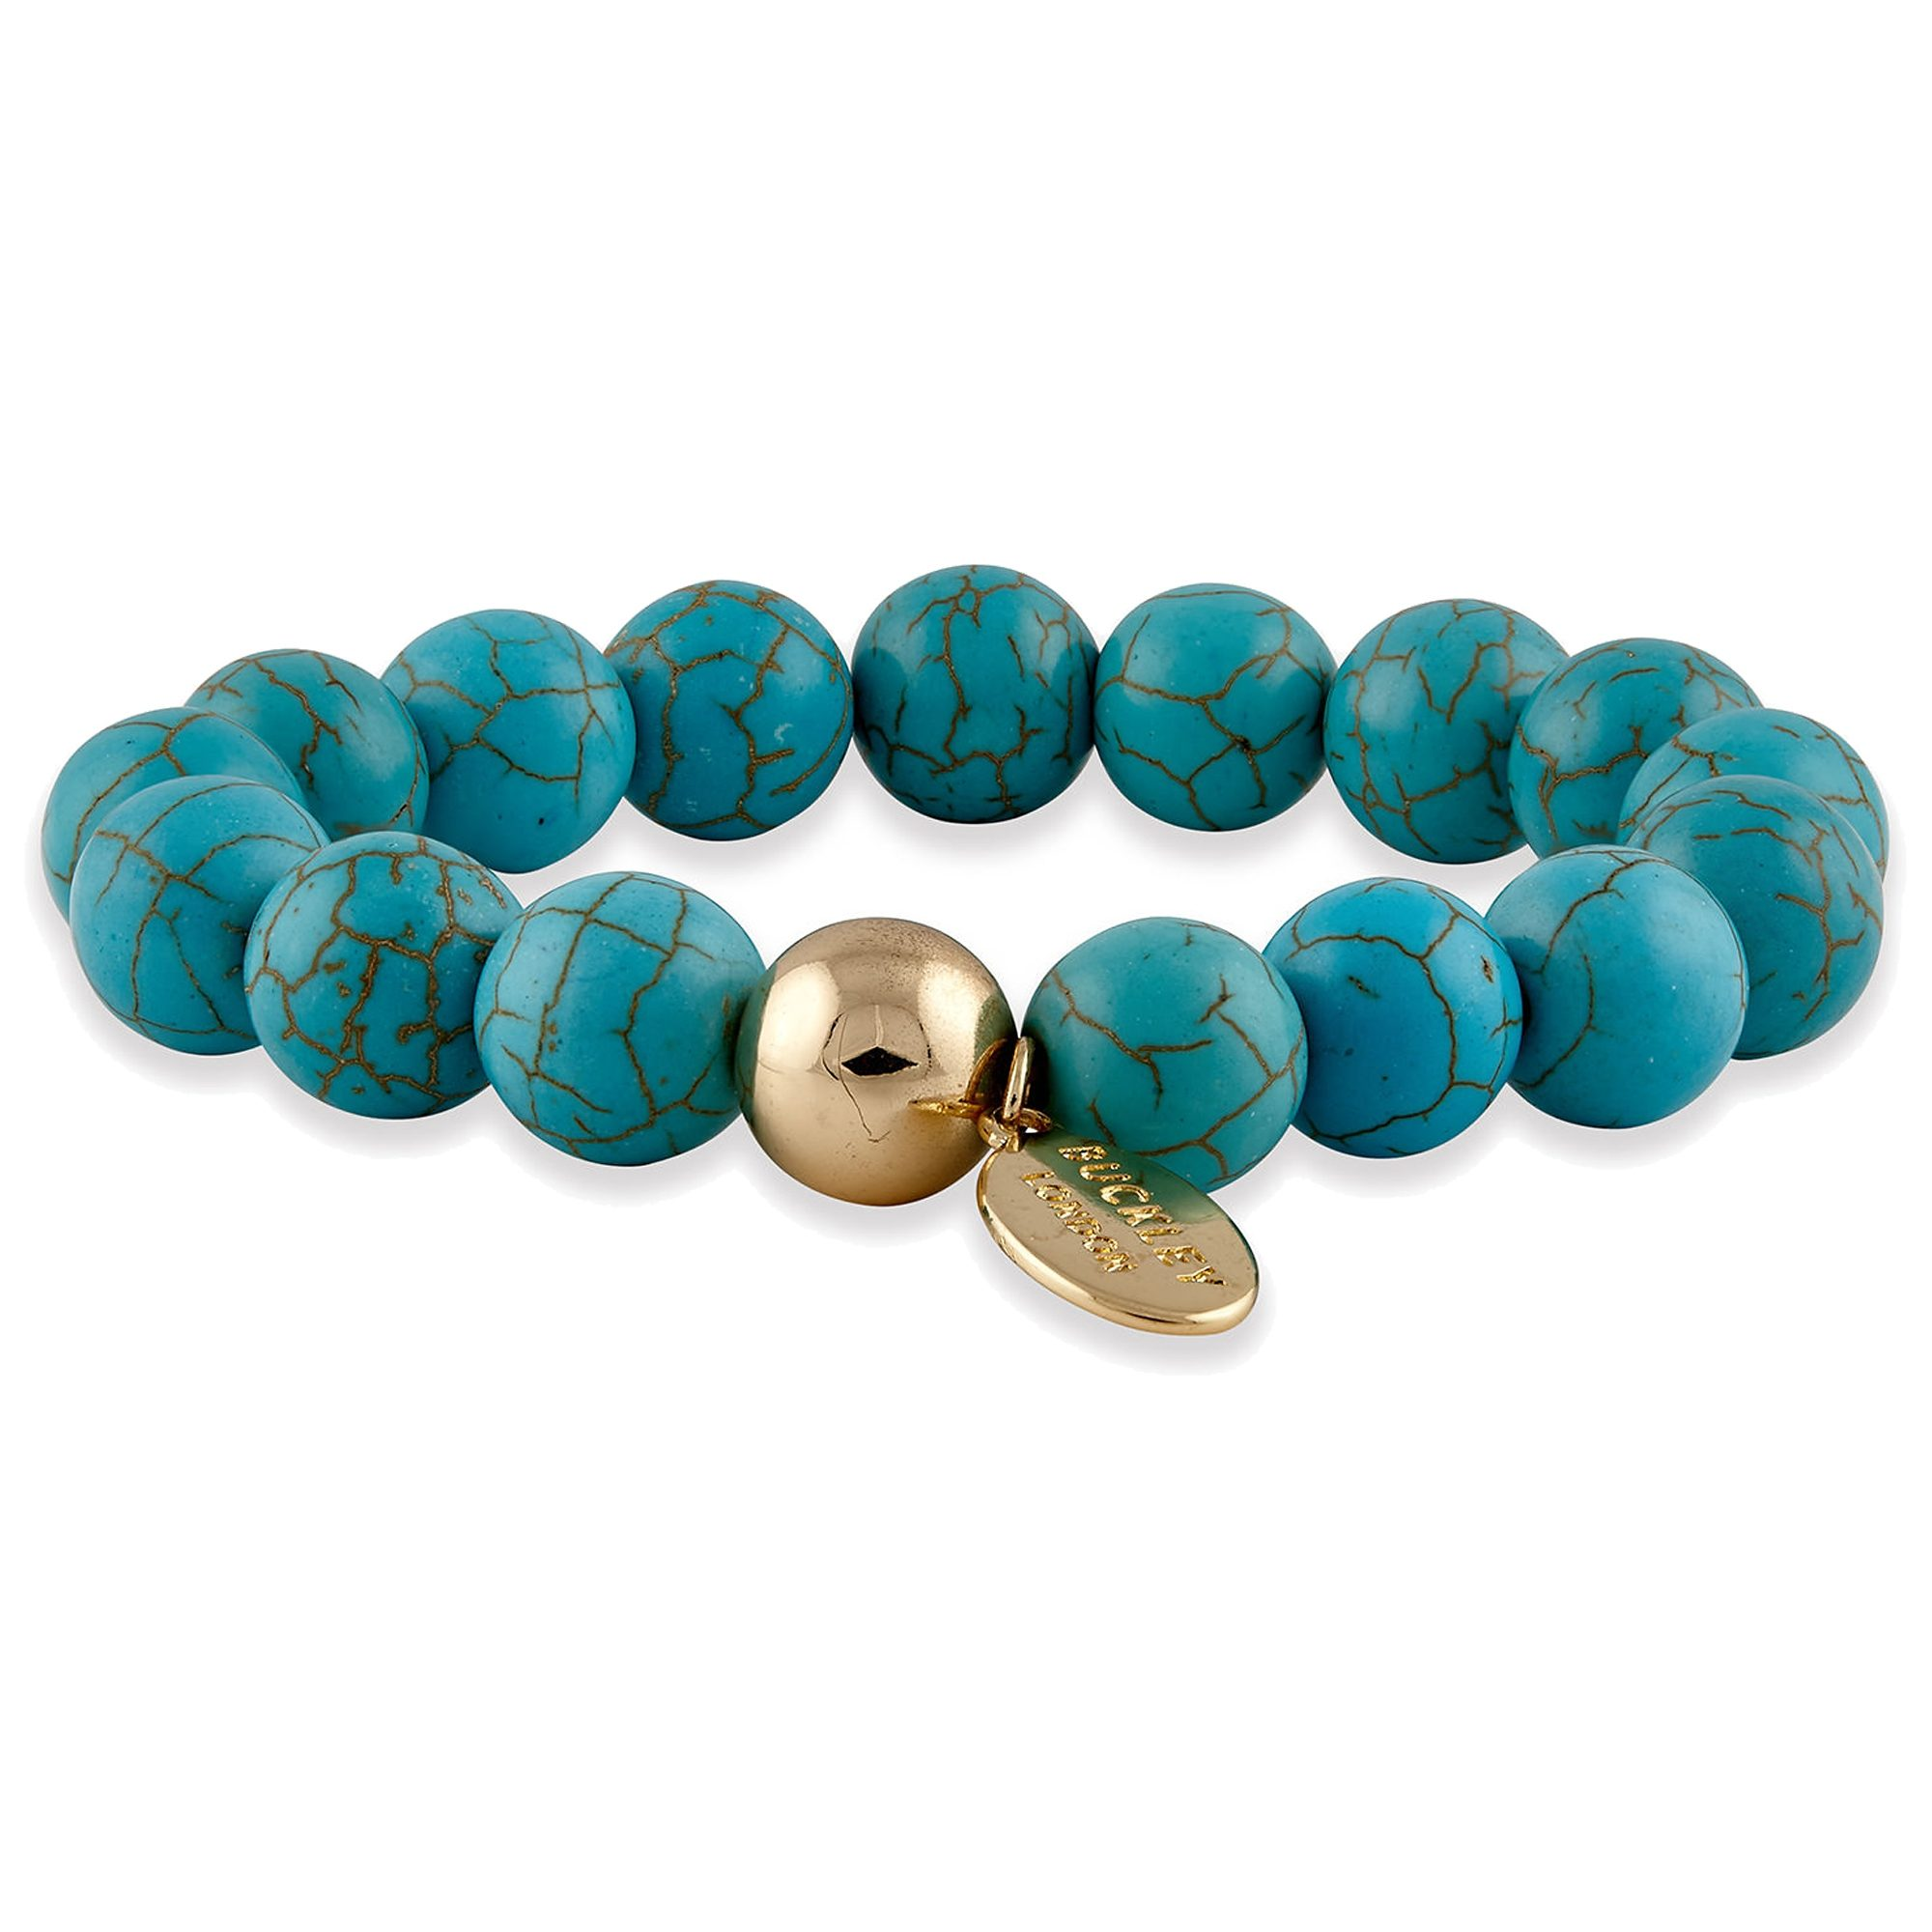 Buckley London Armschmuck »vergoldet mit Turquoise«